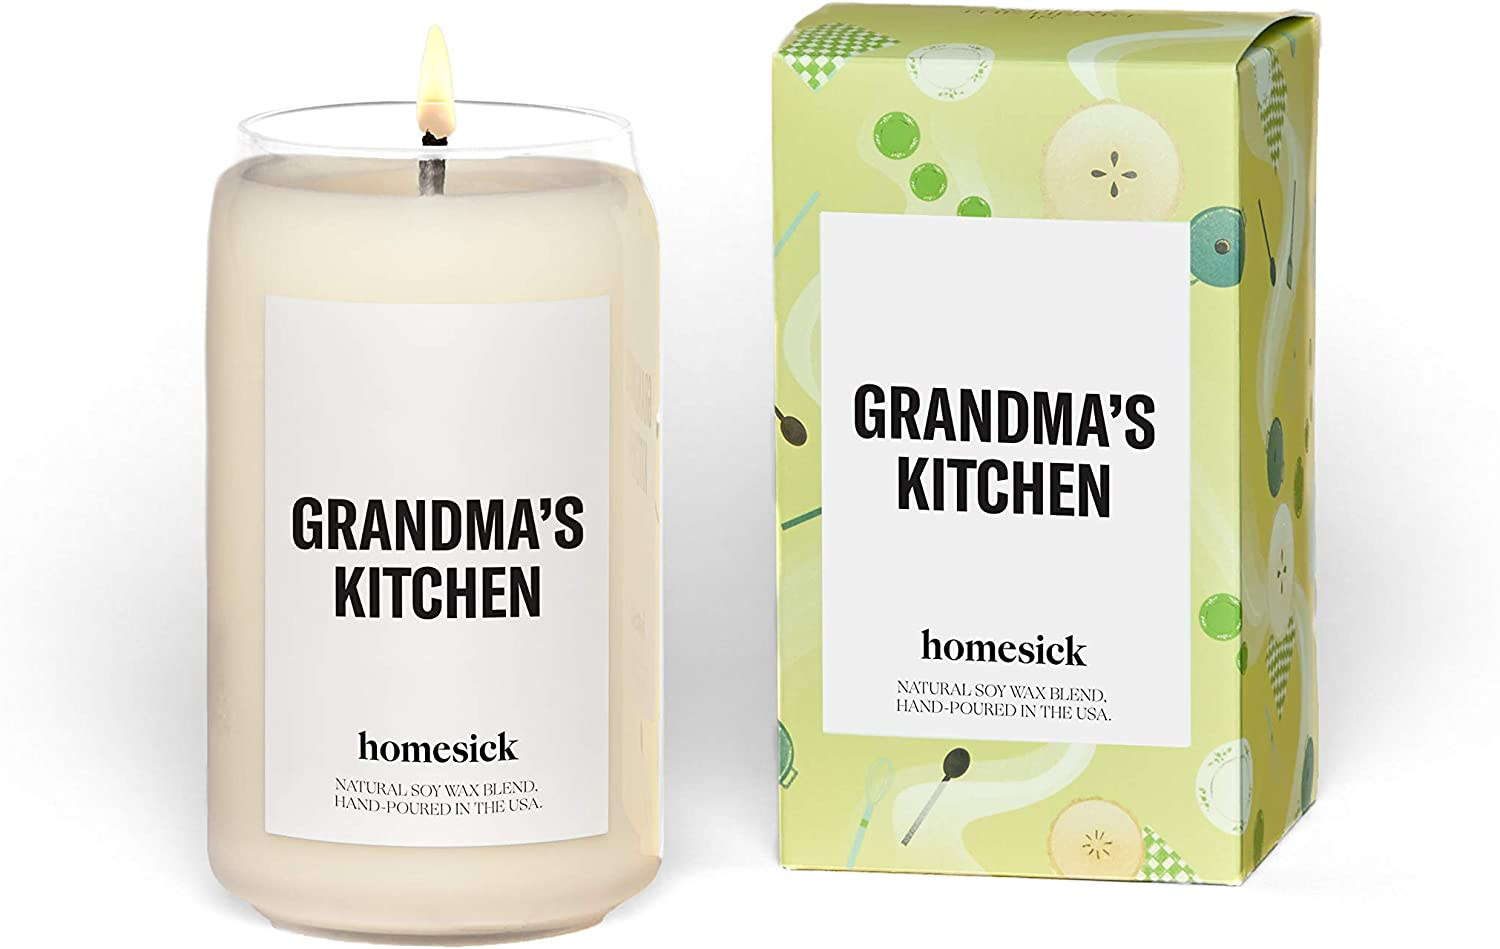 Homesick Scented Candle, Grandma's Kitchen (2020 Version)